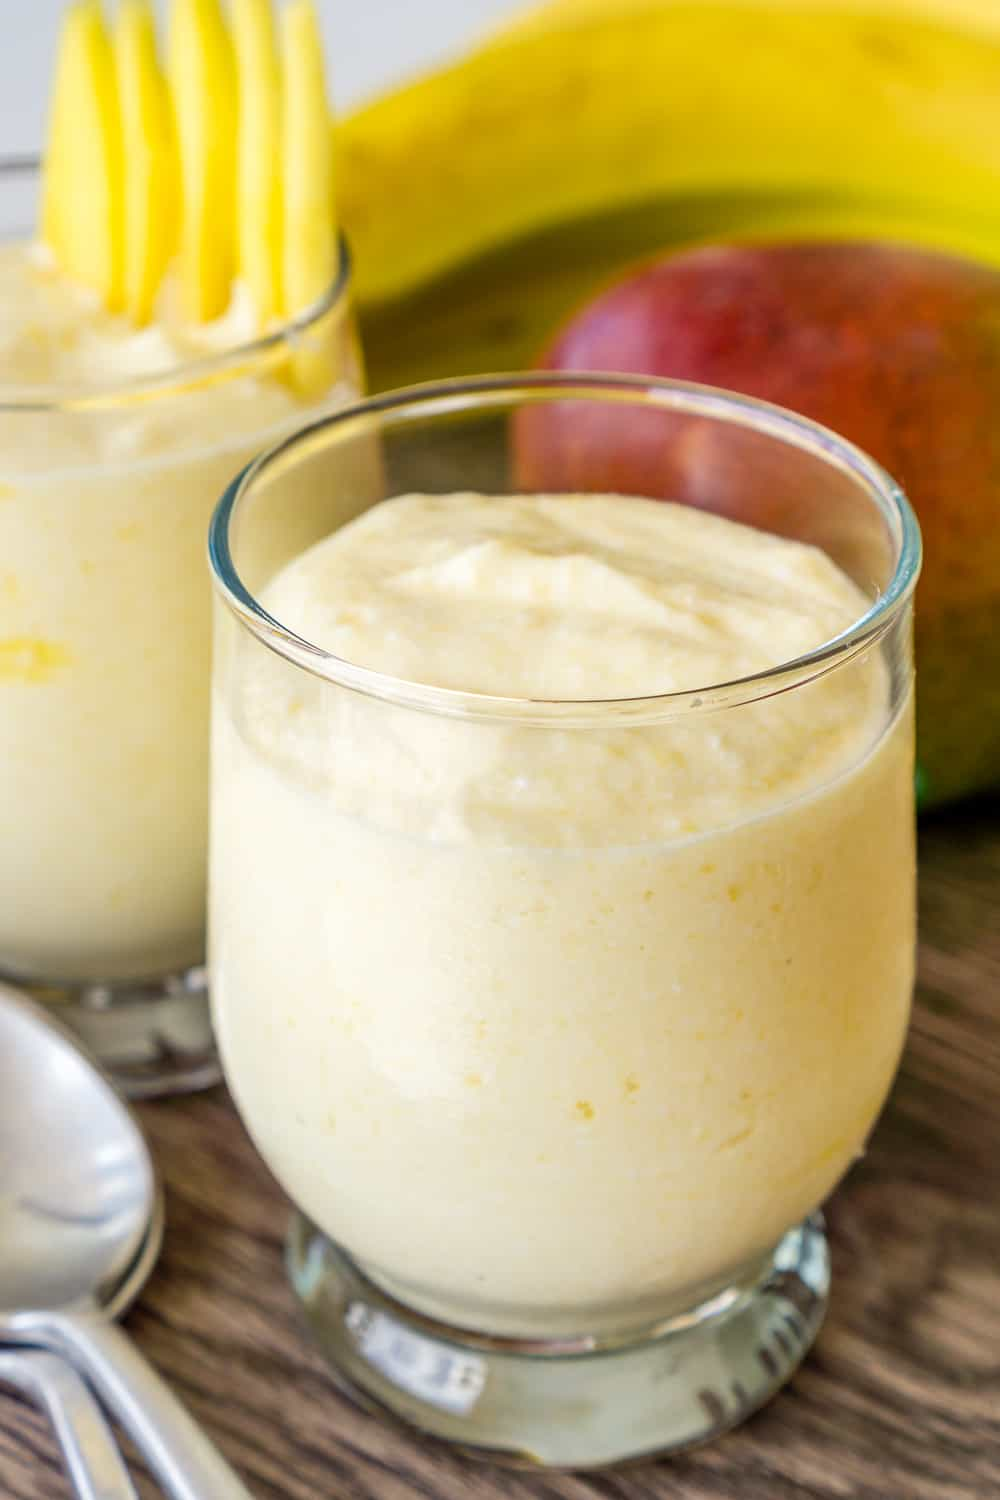 image of mango whipped cottage cheese in a glass